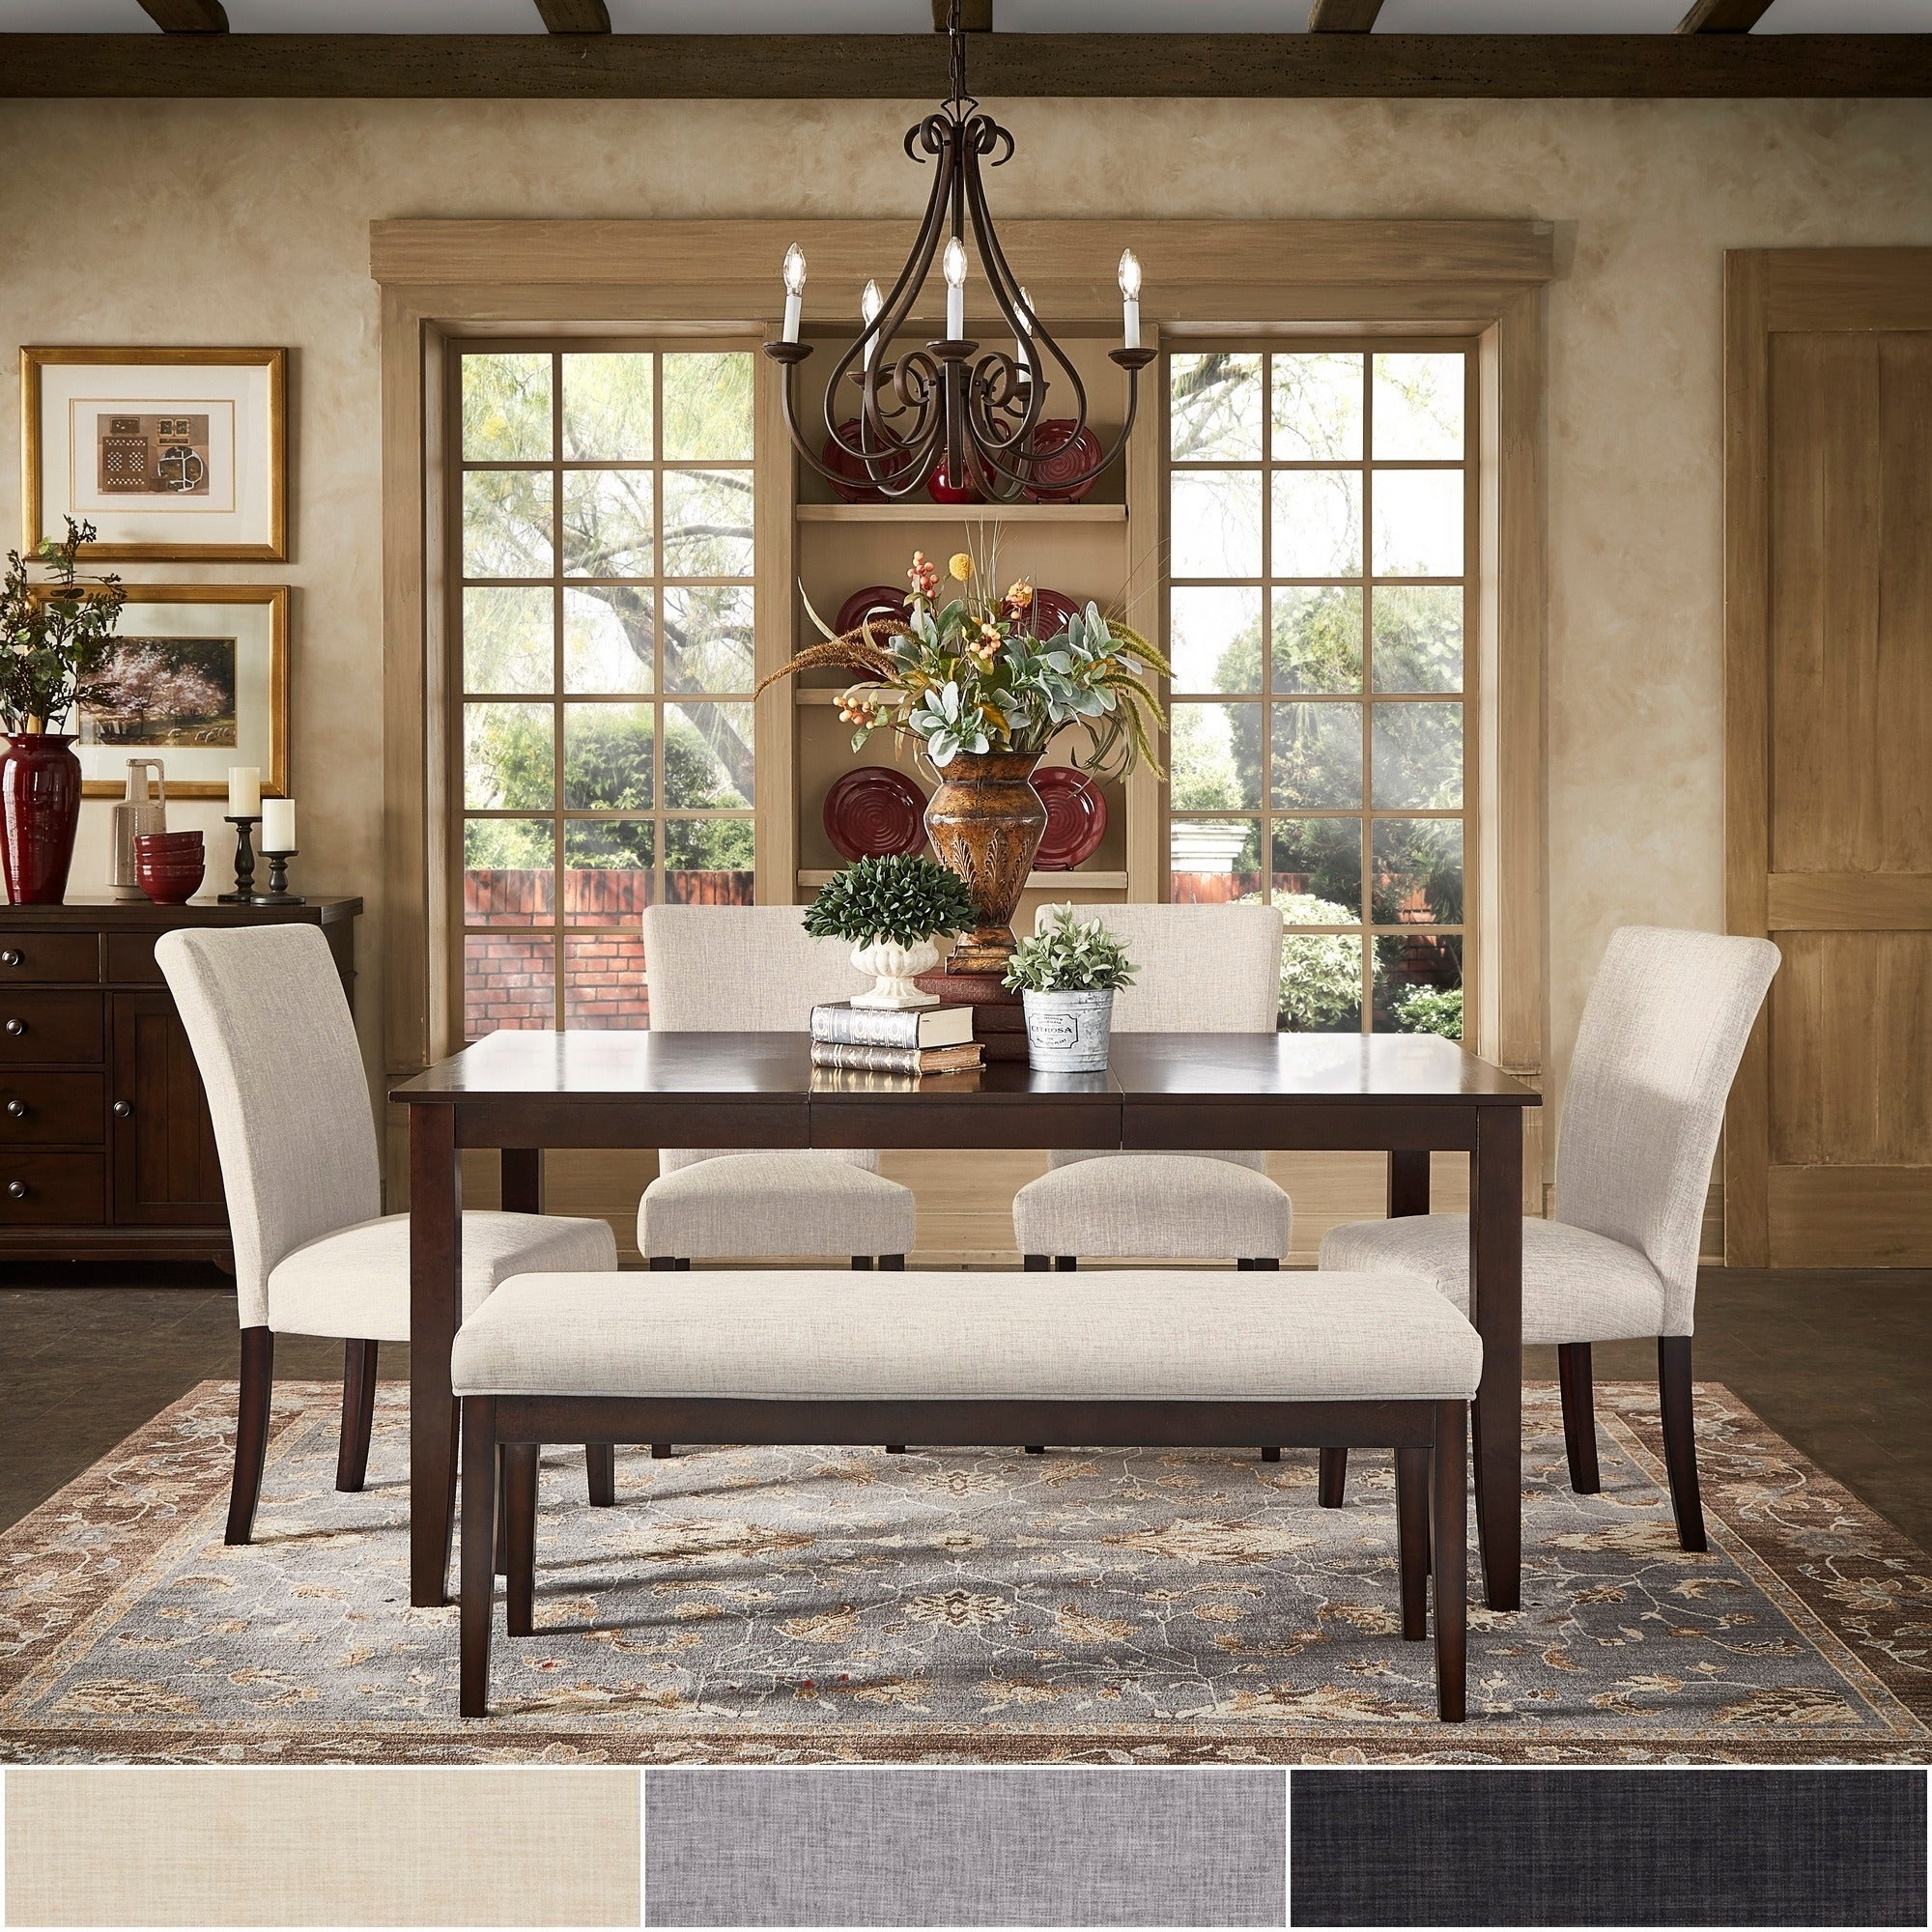 Buy 7 Piece Sets Kitchen & Dining Room Sets Online At Overstock Inside Most Current Autberry 5 Piece Dining Sets (View 11 of 20)